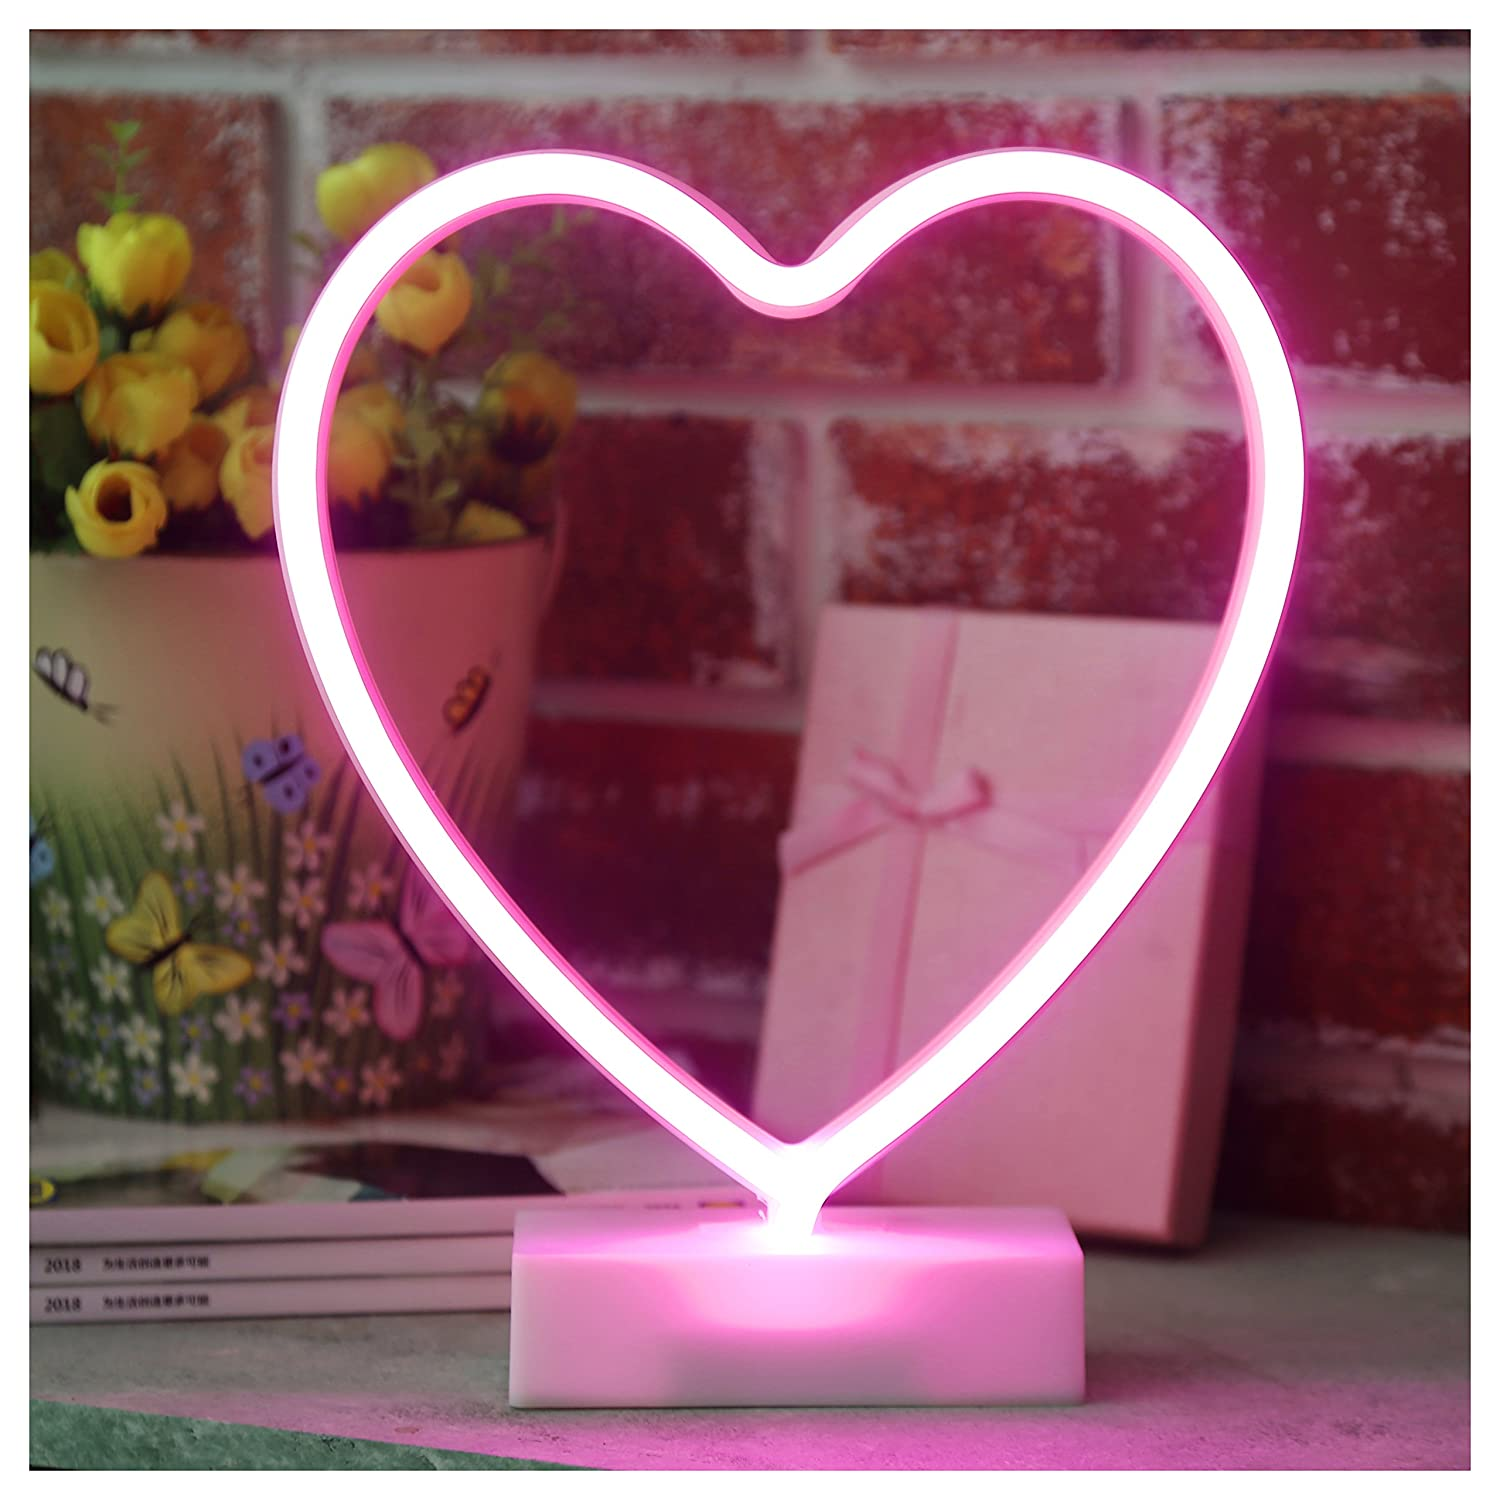 Yii Y Heart Neon Sign Light,Table Decor Lamp,Battery Powered Decor For Desk,Living Room (Heart Pink) by Yii Y